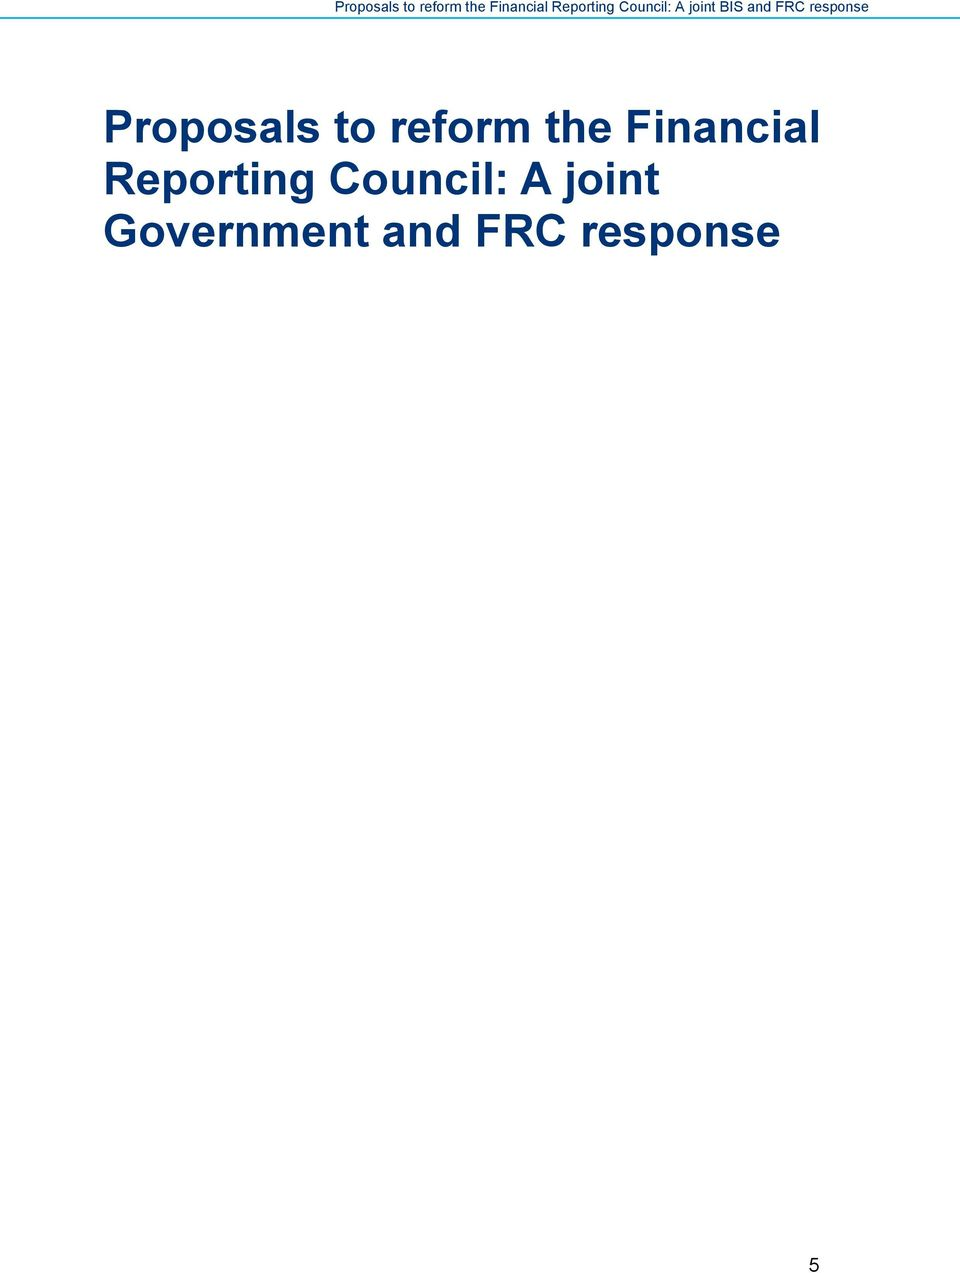 Reporting Council: A